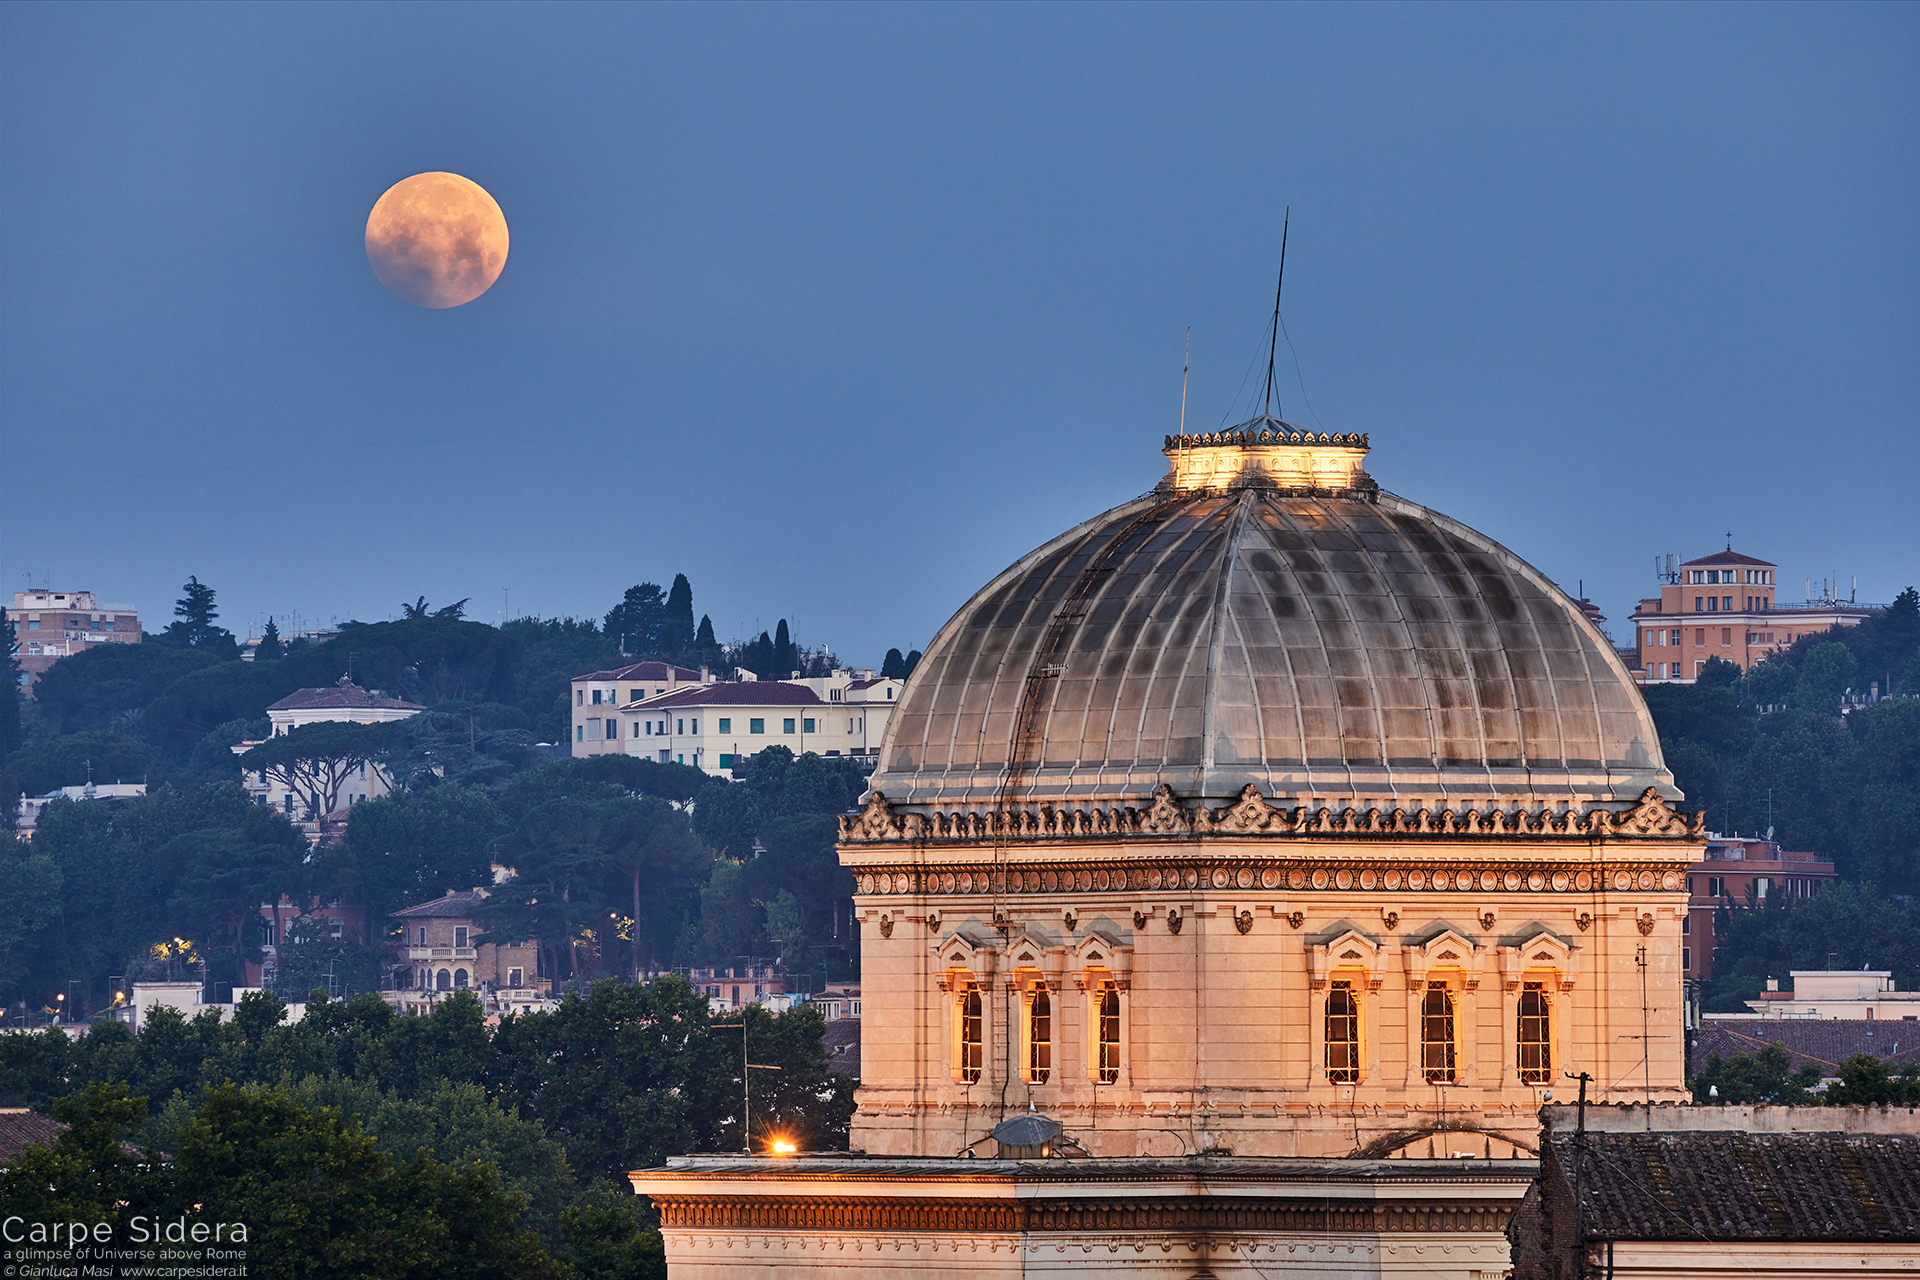 While it sets behind the Synagogue of Rome, the full Moon plays with some clouds